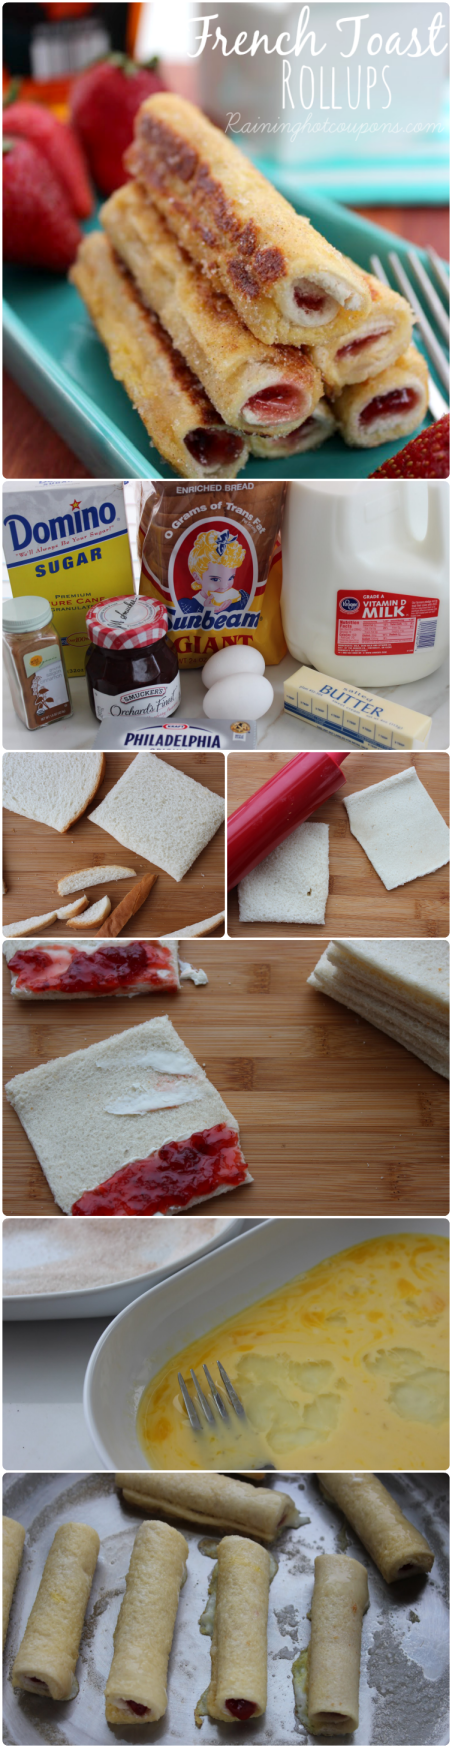 french toast rollups collage